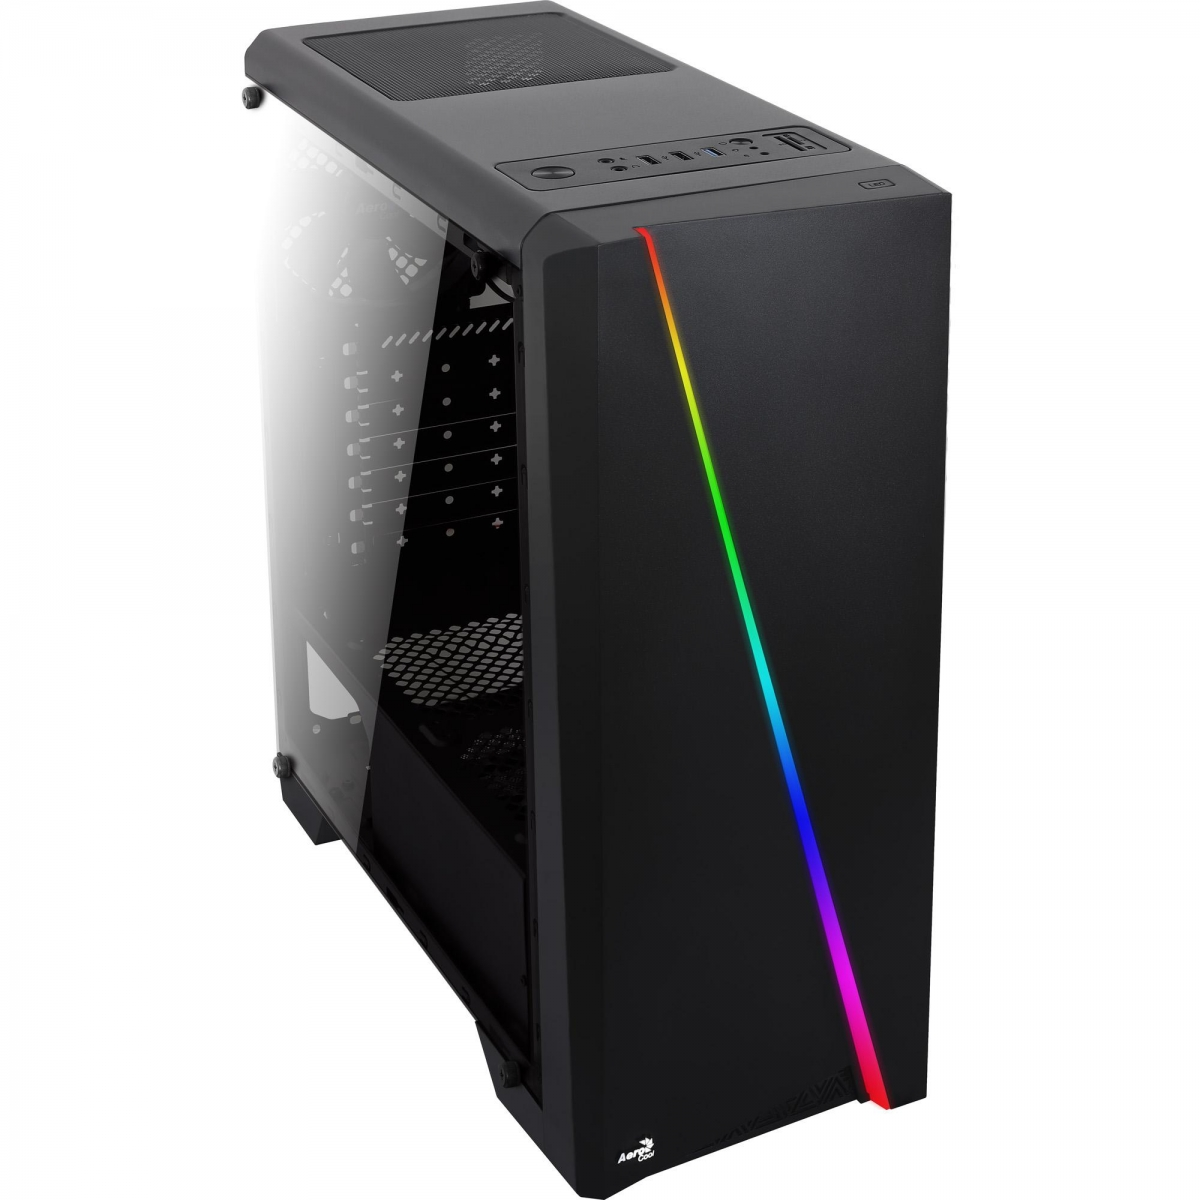 Gabinete Gamer Aerocool Cylon RGB, Mid Tower, Com 1 Fan, Lateral em Acrílico, Black, S-Fonte